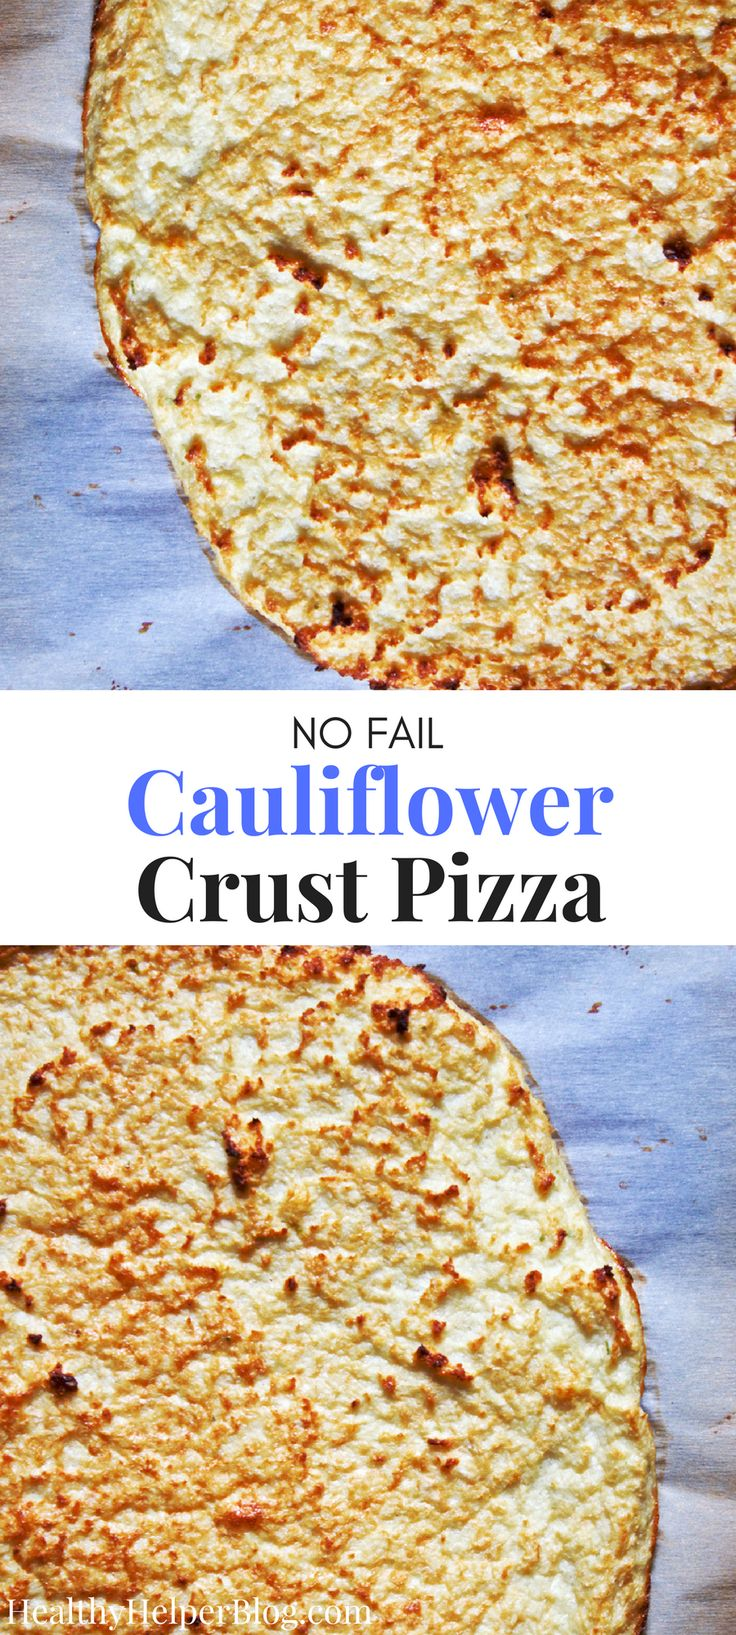 NO FAIL Cauliflower Crust Pizza | Healthy Helper @Healthy_Helper The only cauliflower crust recipe you'll ever need! High protein, gluten-free, grain-free, and only TWO ingredients. This truly is the no-fail pizza crust recipe that anyone can make!